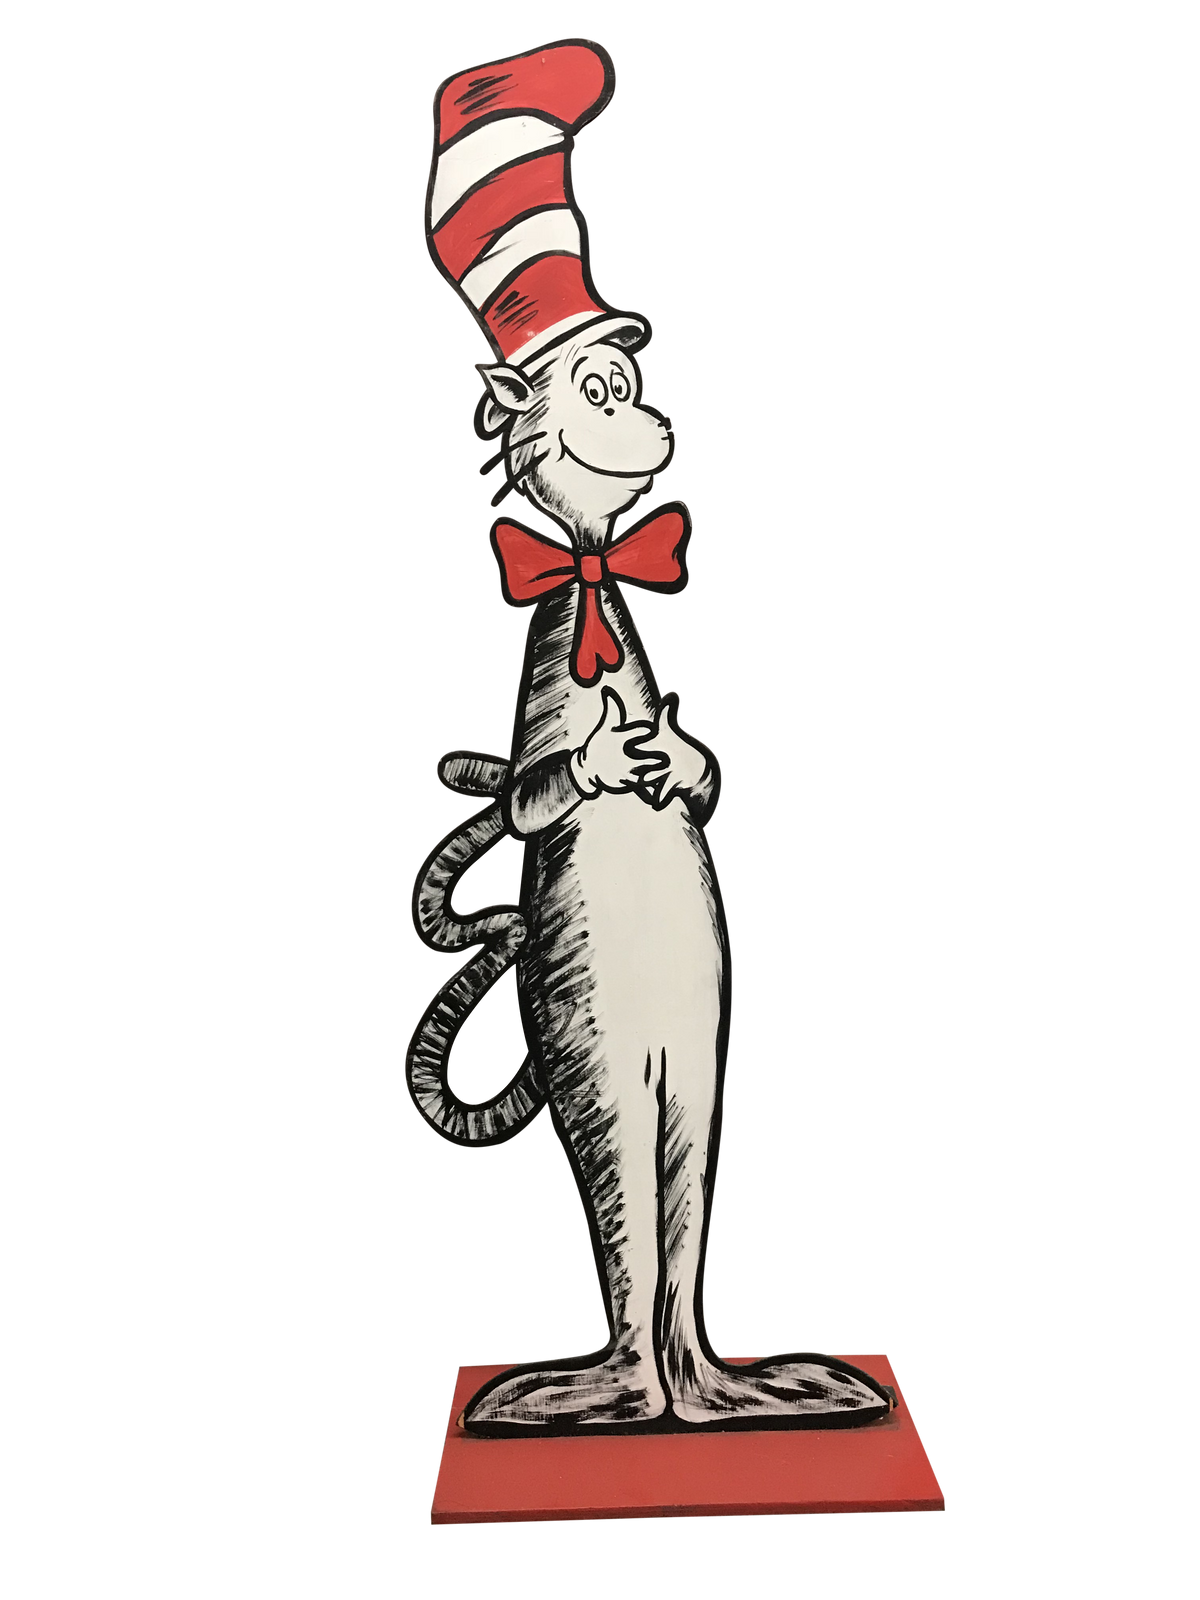 The Cat In The Hat Standee